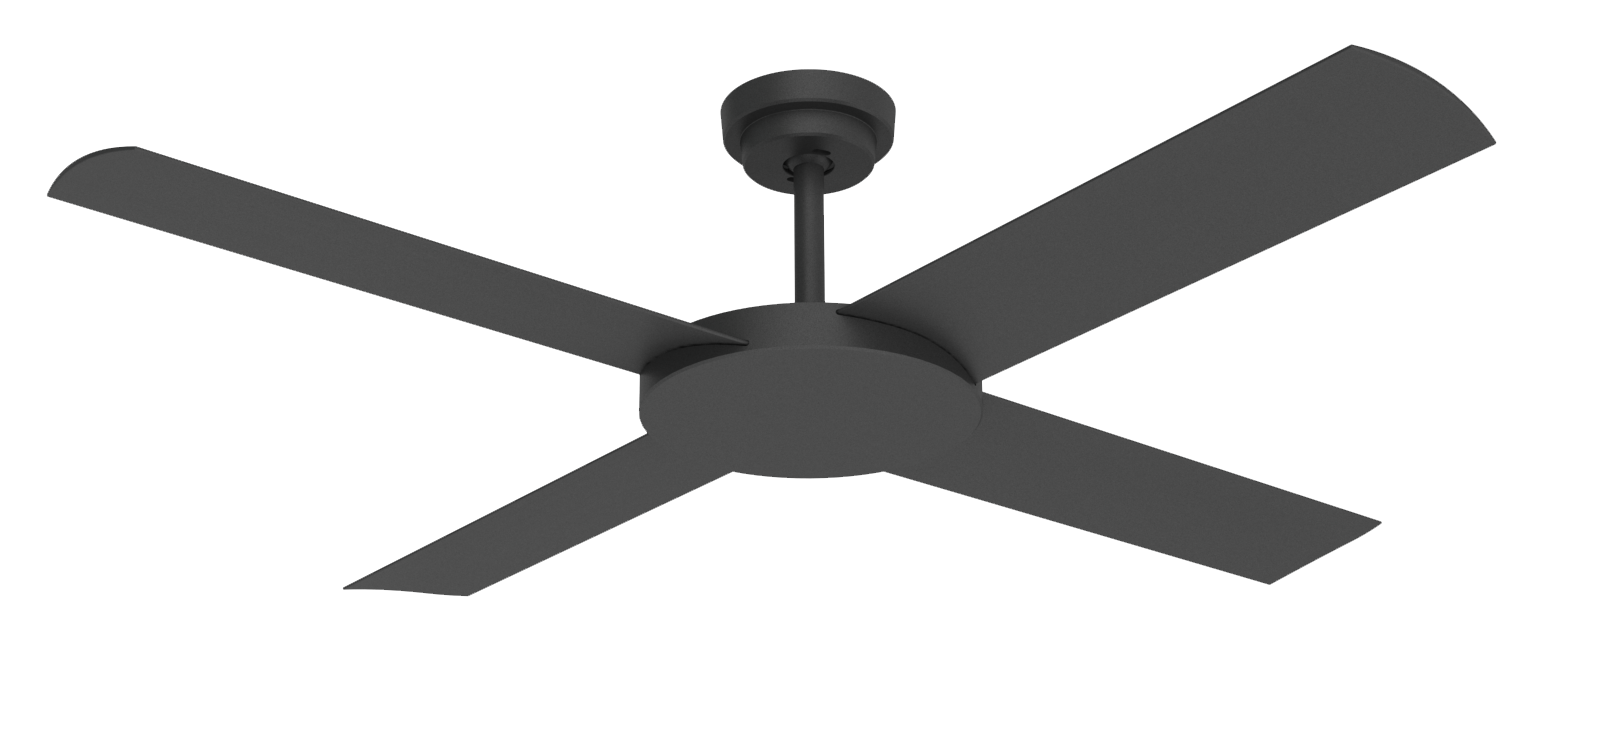 "Revolution 3 Black 52"" Indoor/Outdoor Ceiling Fan with Wall Control"